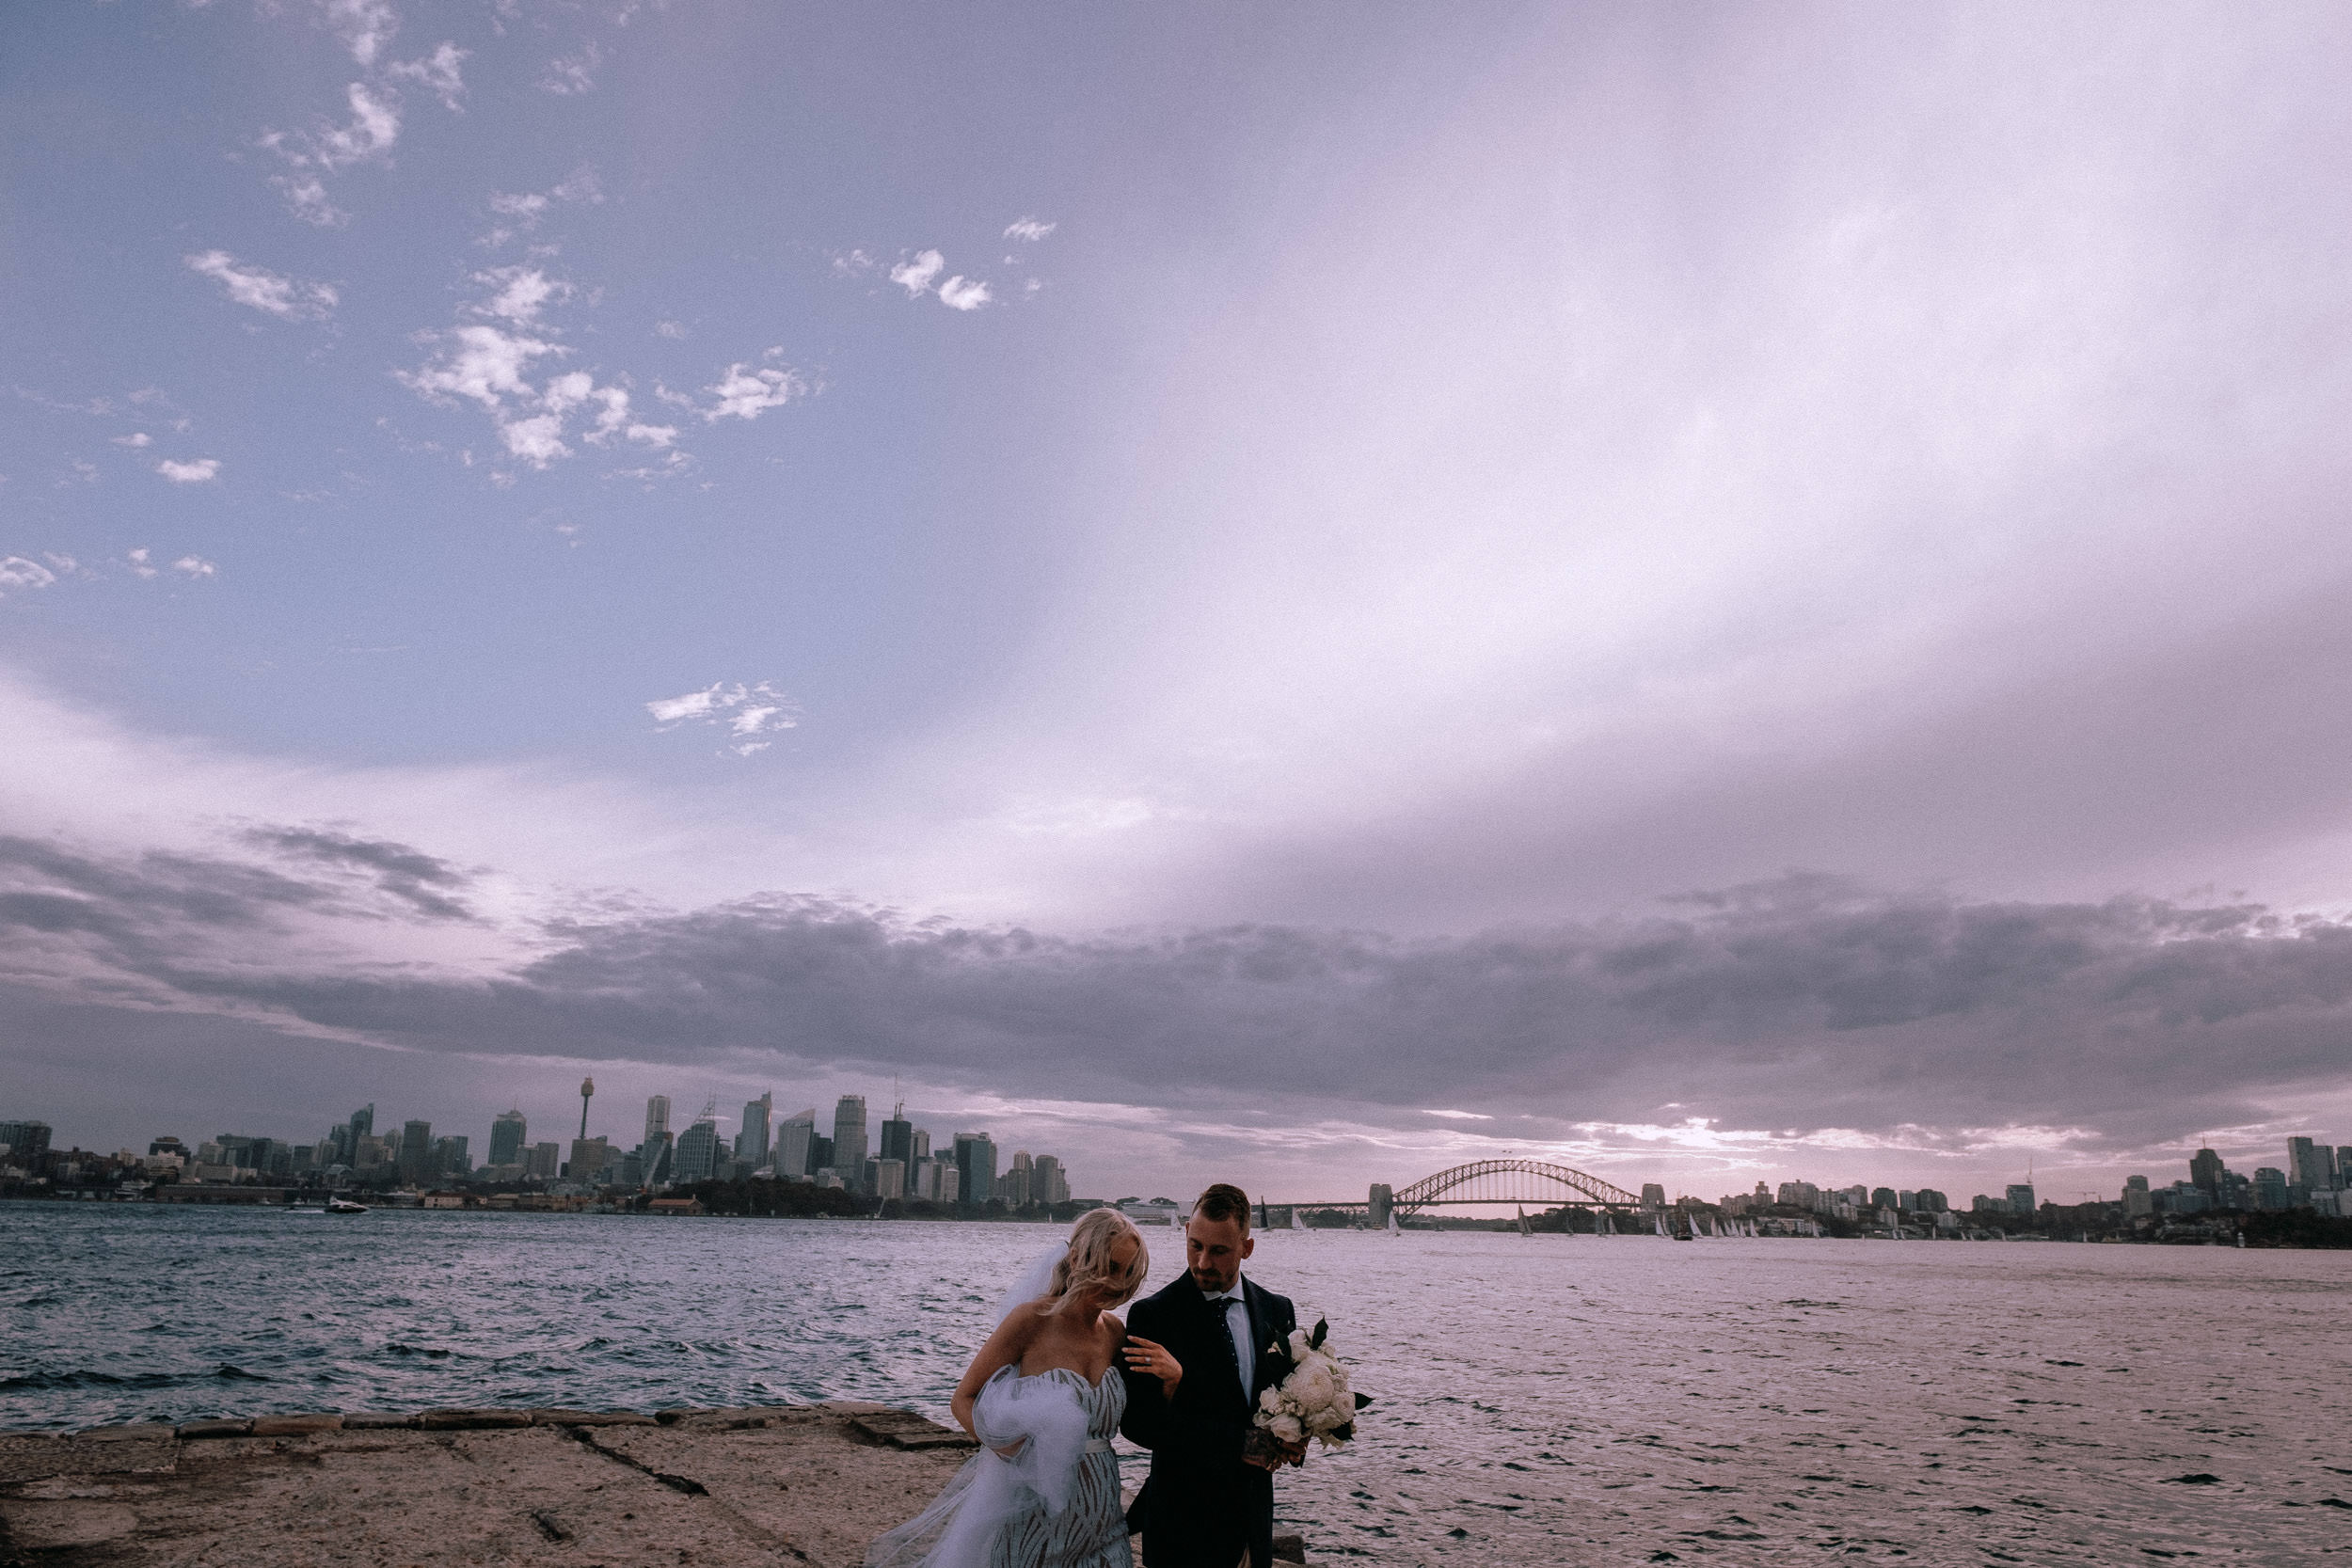 An epic frame of a newly married bride and groom at Bradley's Head, on Sydney Harbour, at sunset, with Sydney City, the world-famous Opera House and Harbour Bridge in the background